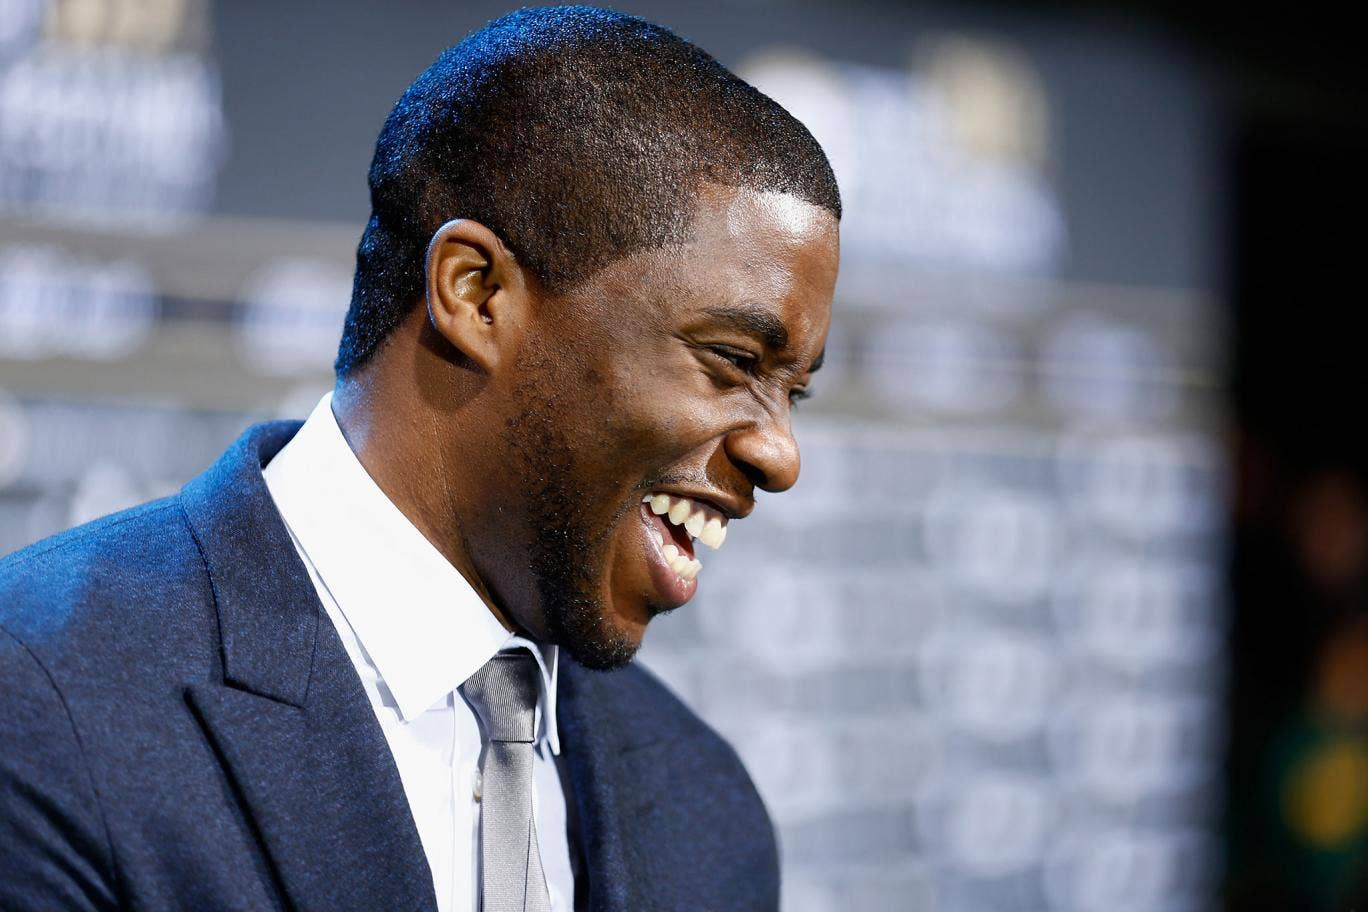 Black Panther Actor Actor in Black Panther – a